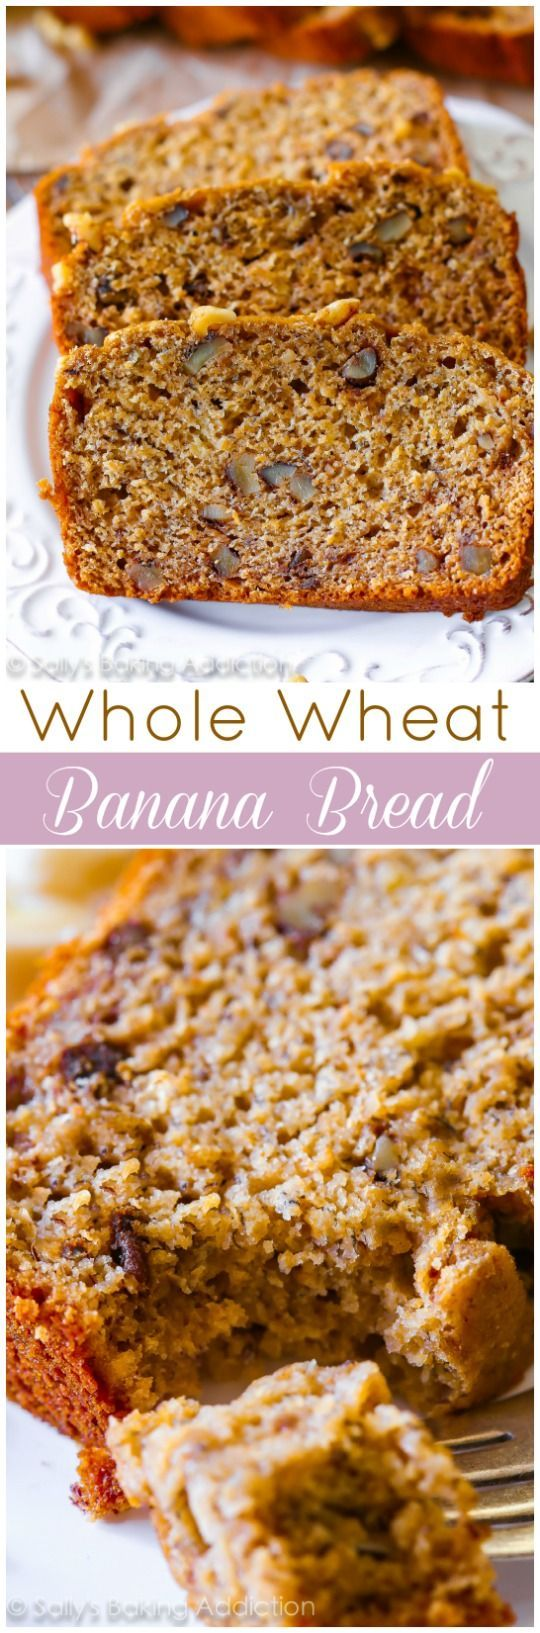 No butter, no oil, 100% whole wheat and actually tasting GOOD Whole Wheat Banana Bread. Seriously, it's wonderful!